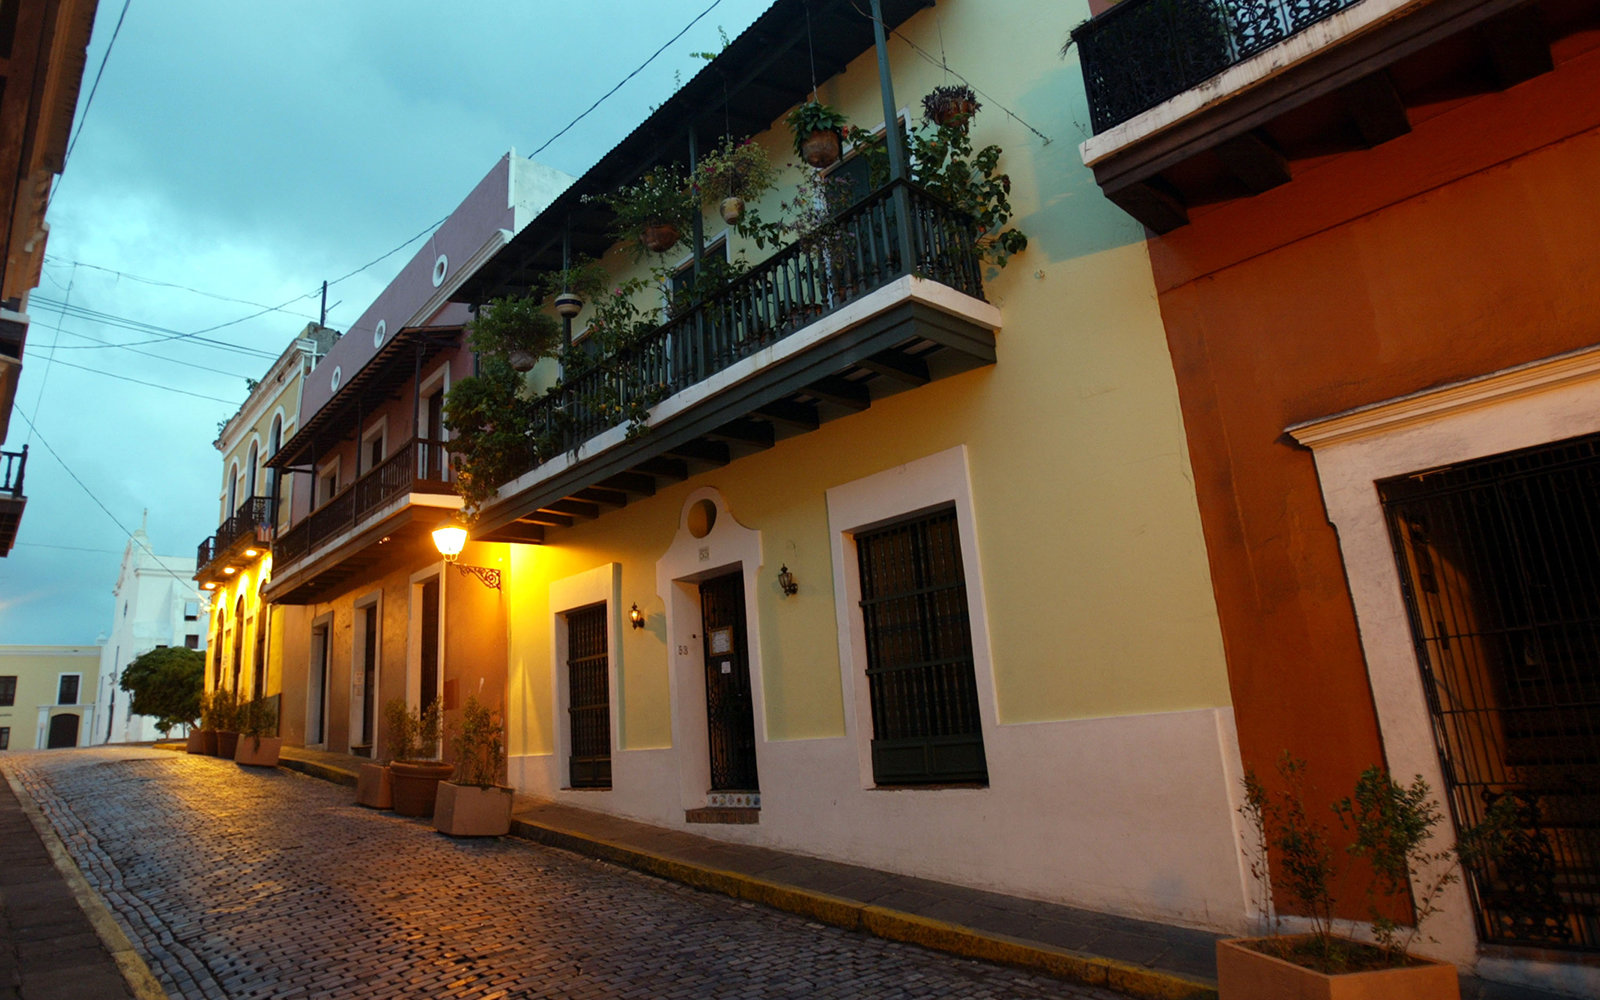 SAN JUAN, PUERTO RICO- APRIL 26: Colorful homes line the cobblestoned streets April 26, 2004 in Old San Juan, the original capital city of San Juan, Puerto Rico. The old city is a historic district of seven square blocks made up of ancient buildings and c